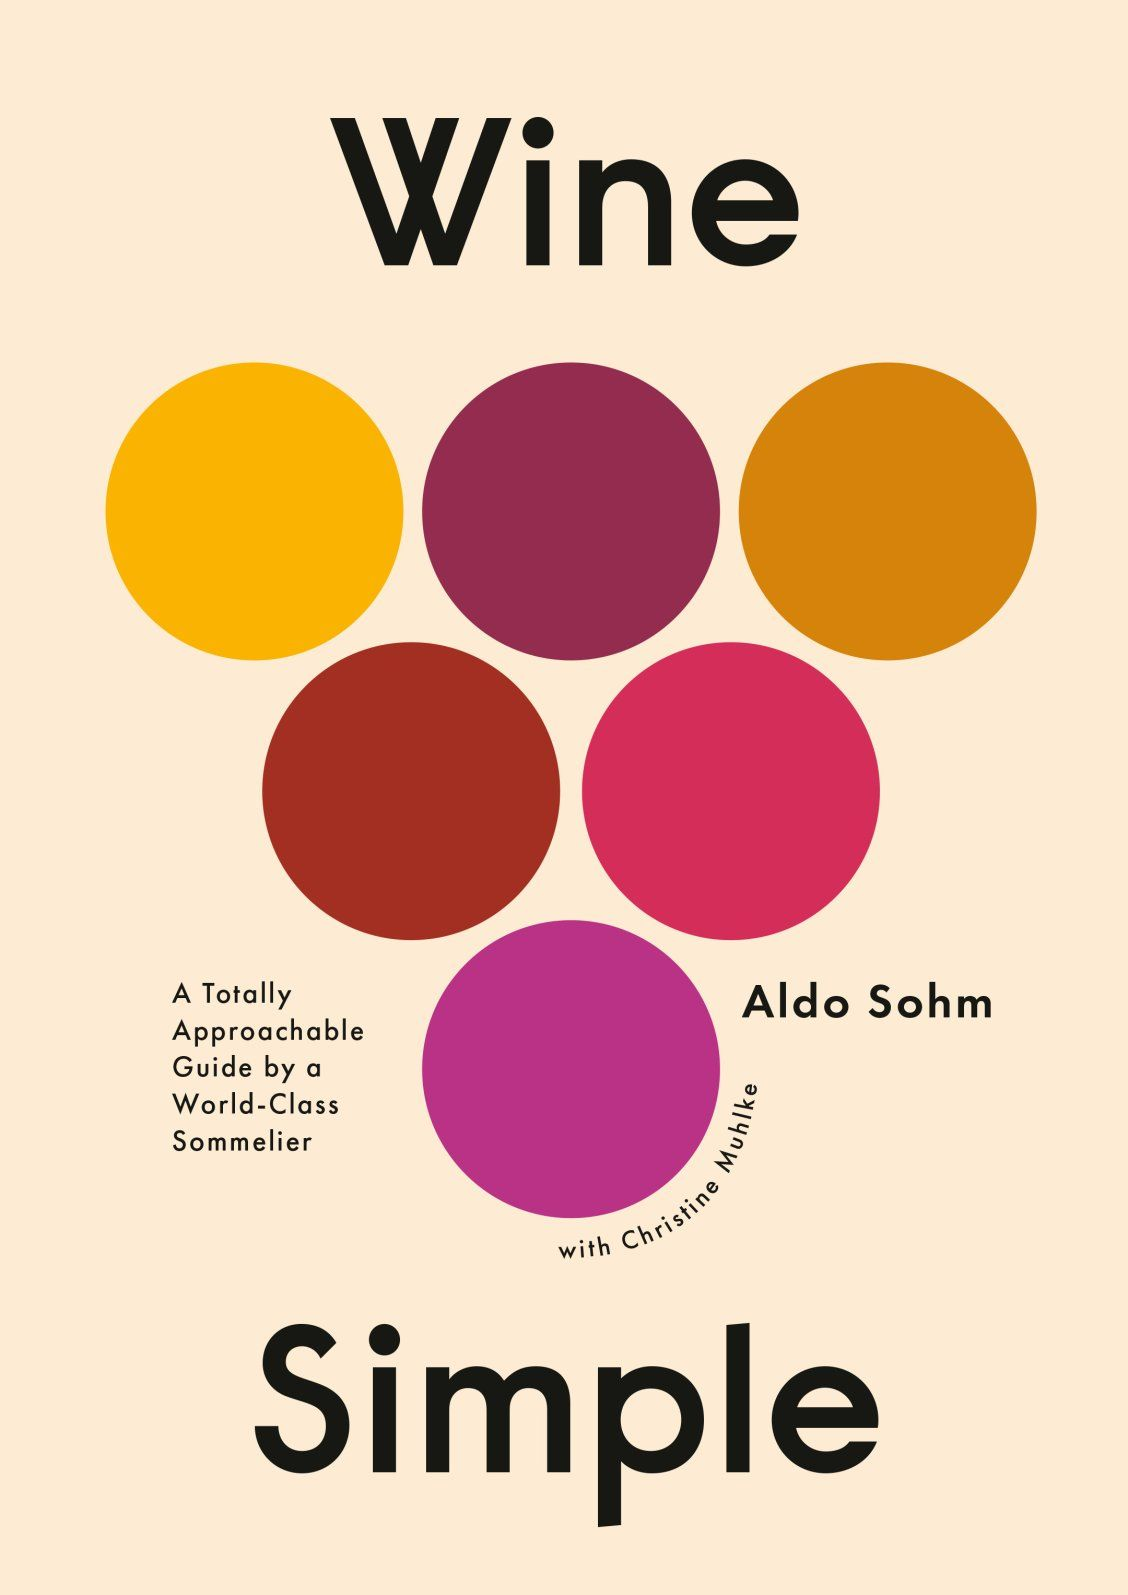 Wine Simple By Aldo Sohm Christine Muhlke 9781984824257 Penguinrandomhouse Com Books Sommelier Wine Guide Wine Knowledge